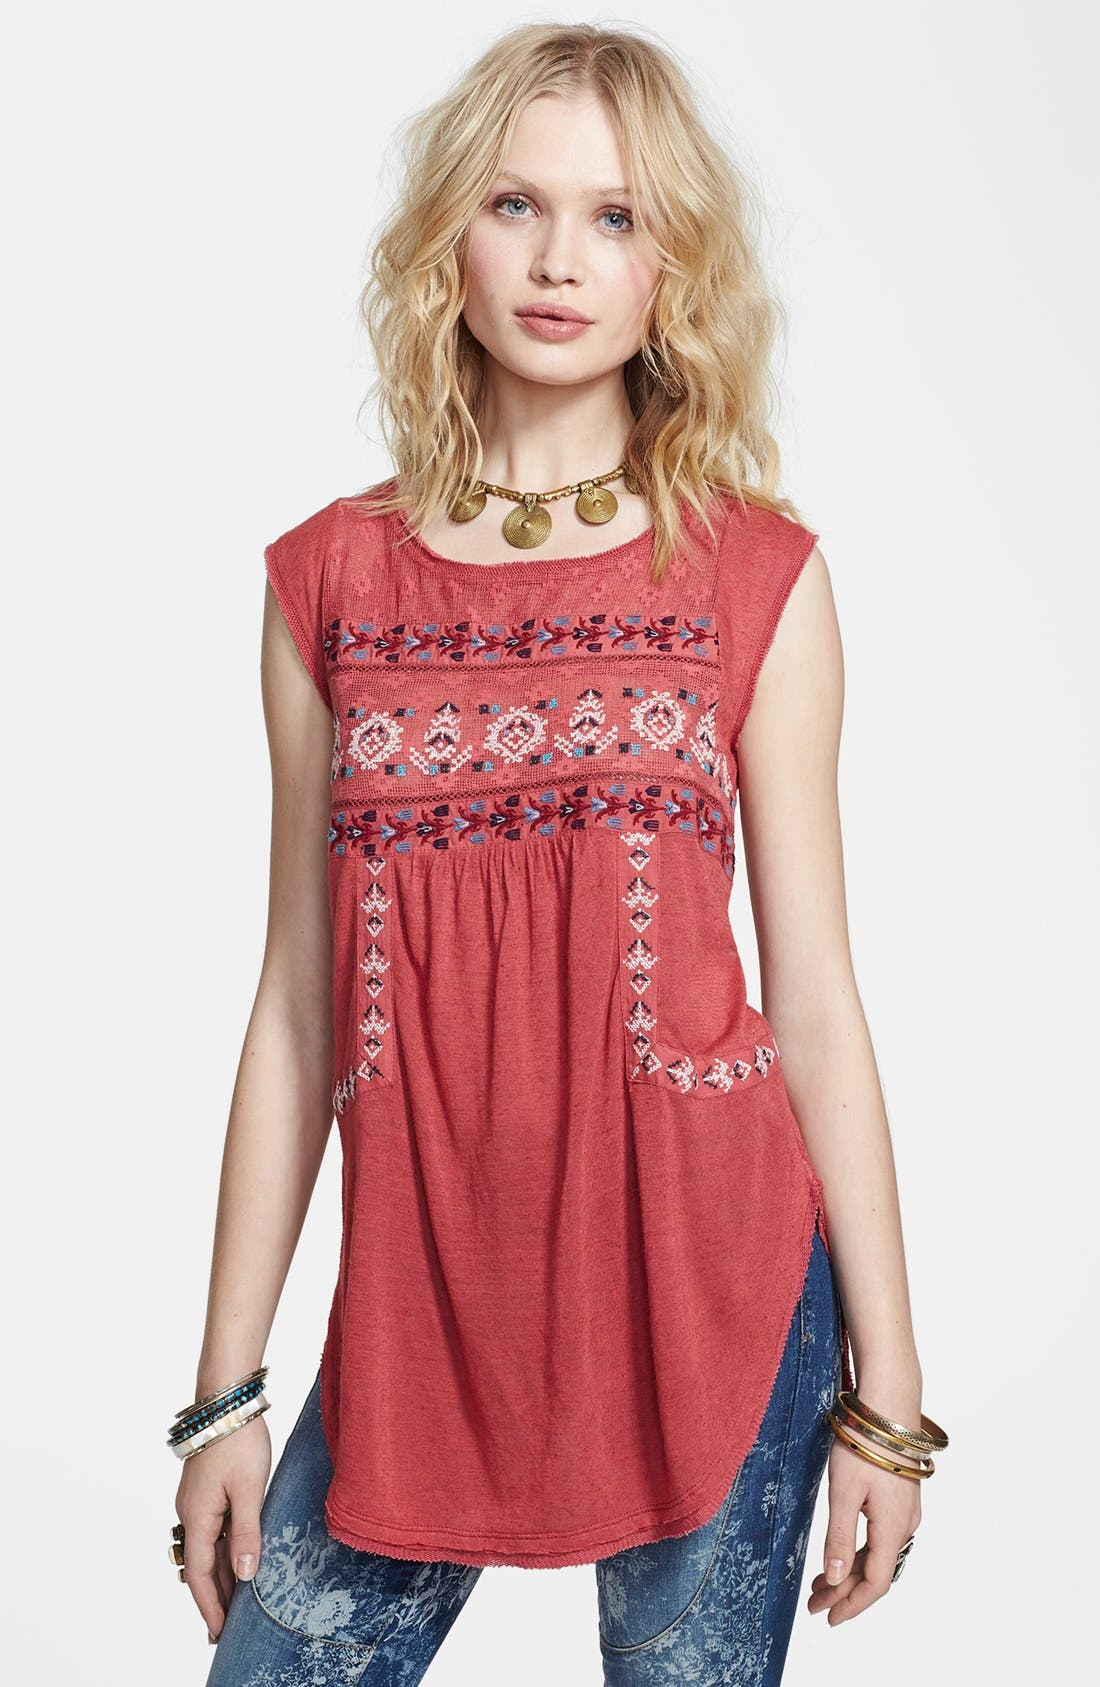 Alternate Image 1 Selected - Free People 'Reckless Abandon' Embroidered Tunic Top